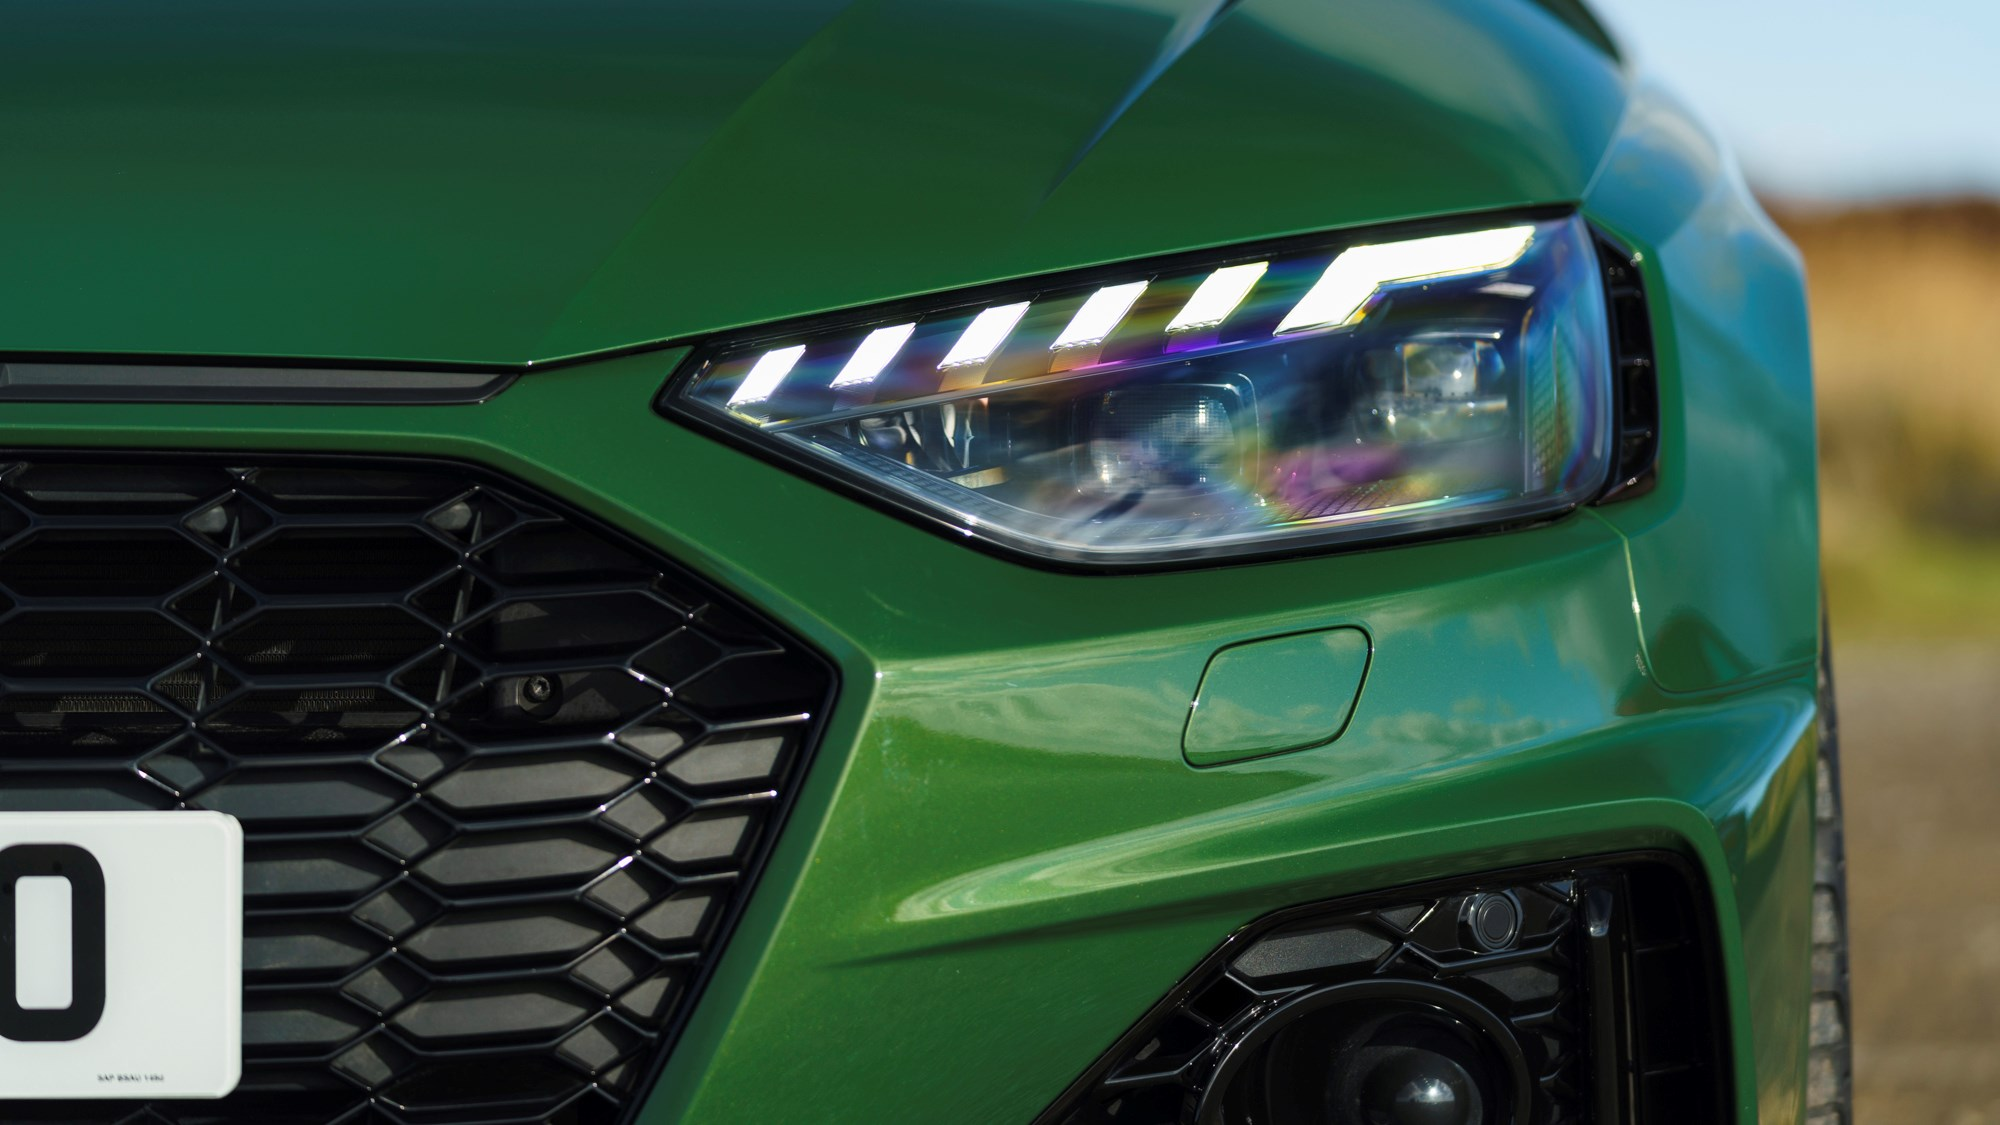 Green 2021 Audi RS4 Avant headlamp and grille detail